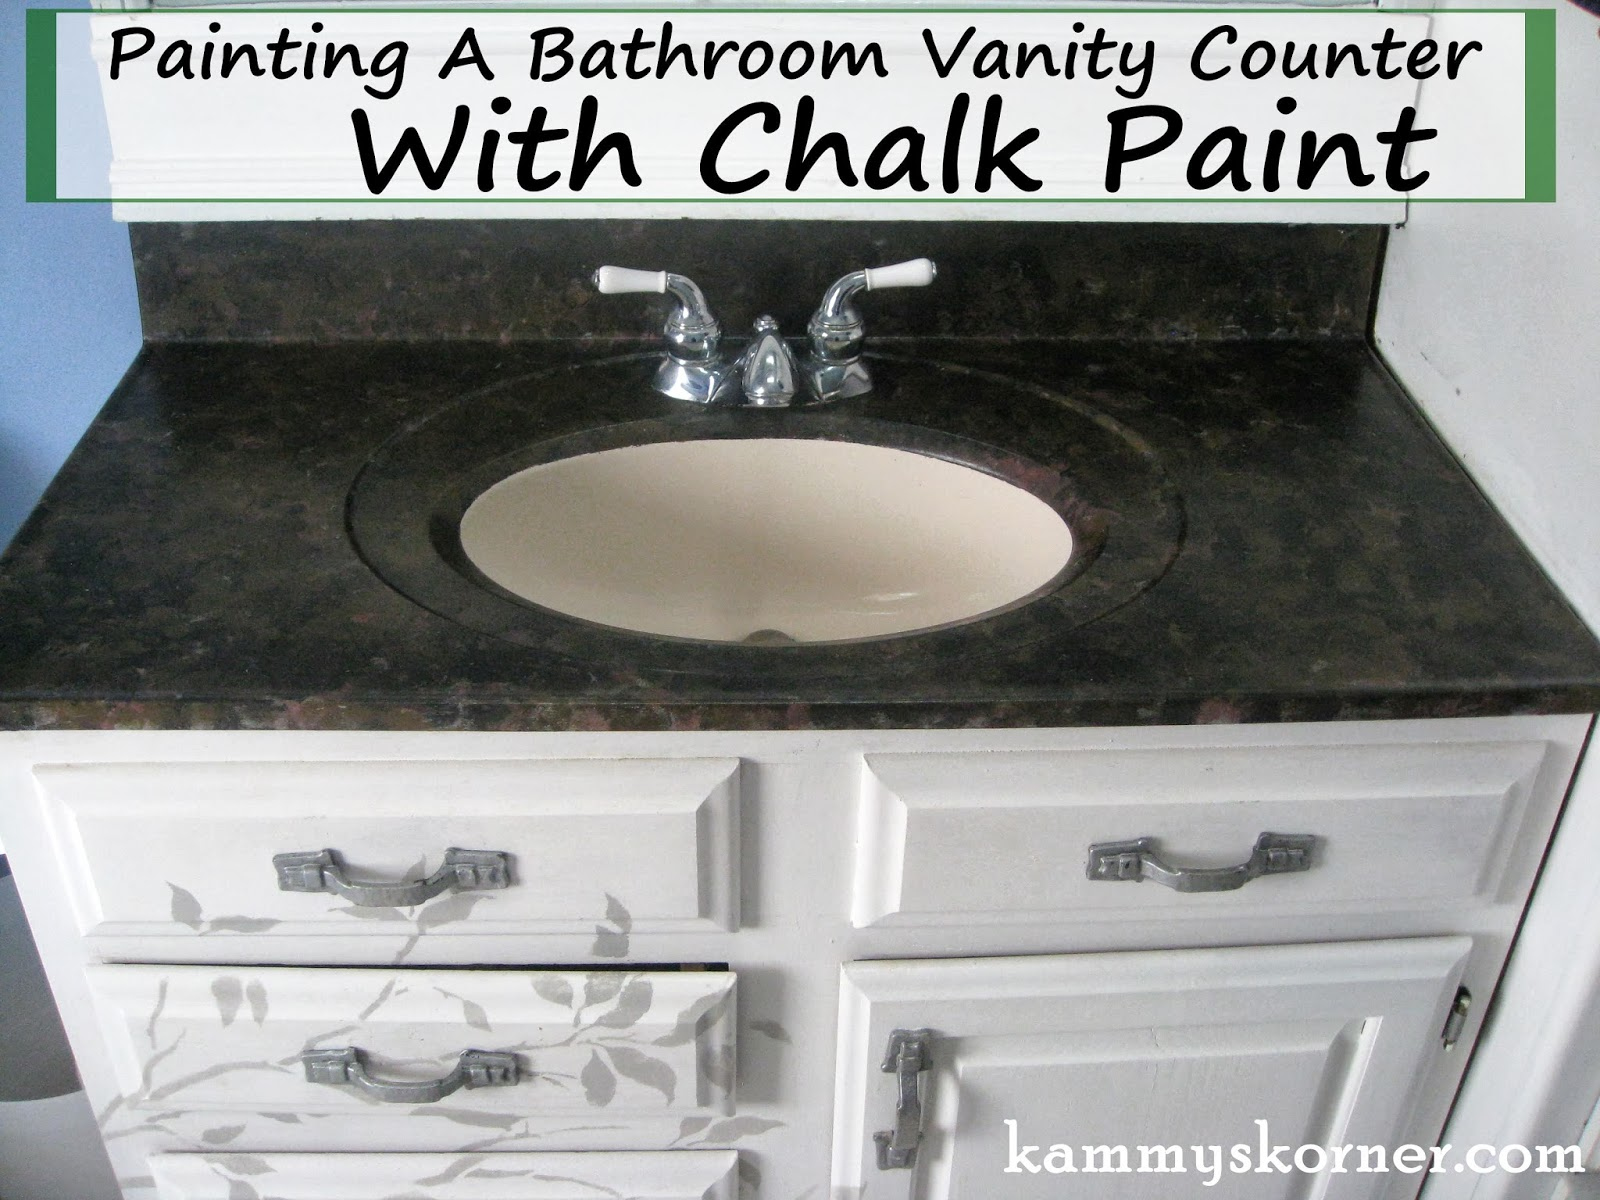 Someday Crafts Painting A Bathroom Vanity Counter With Chalk Paint - Painting bathroom vanity laminate